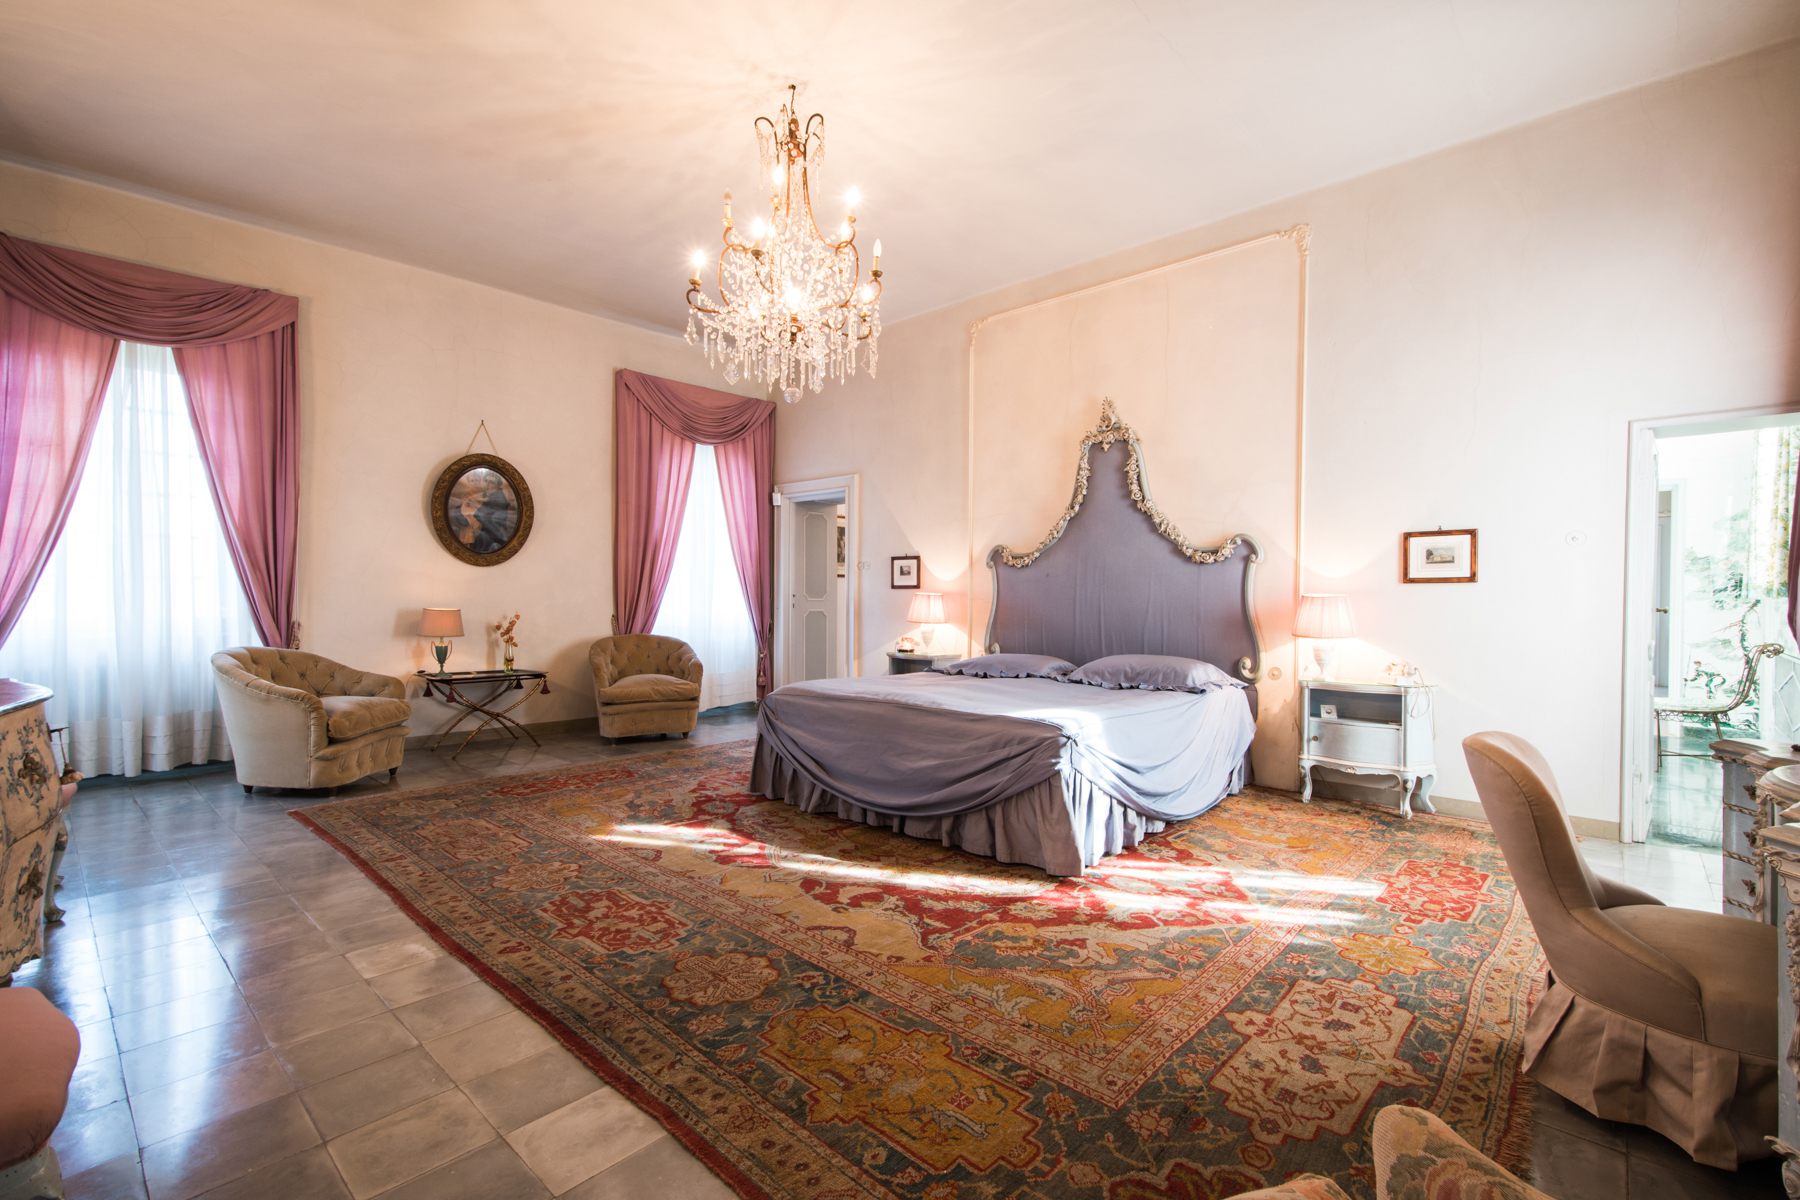 Additional photo for property listing at Charming 18th century villa in Lucca countryside Montuolo Lucca, Lucca 55100 Italy